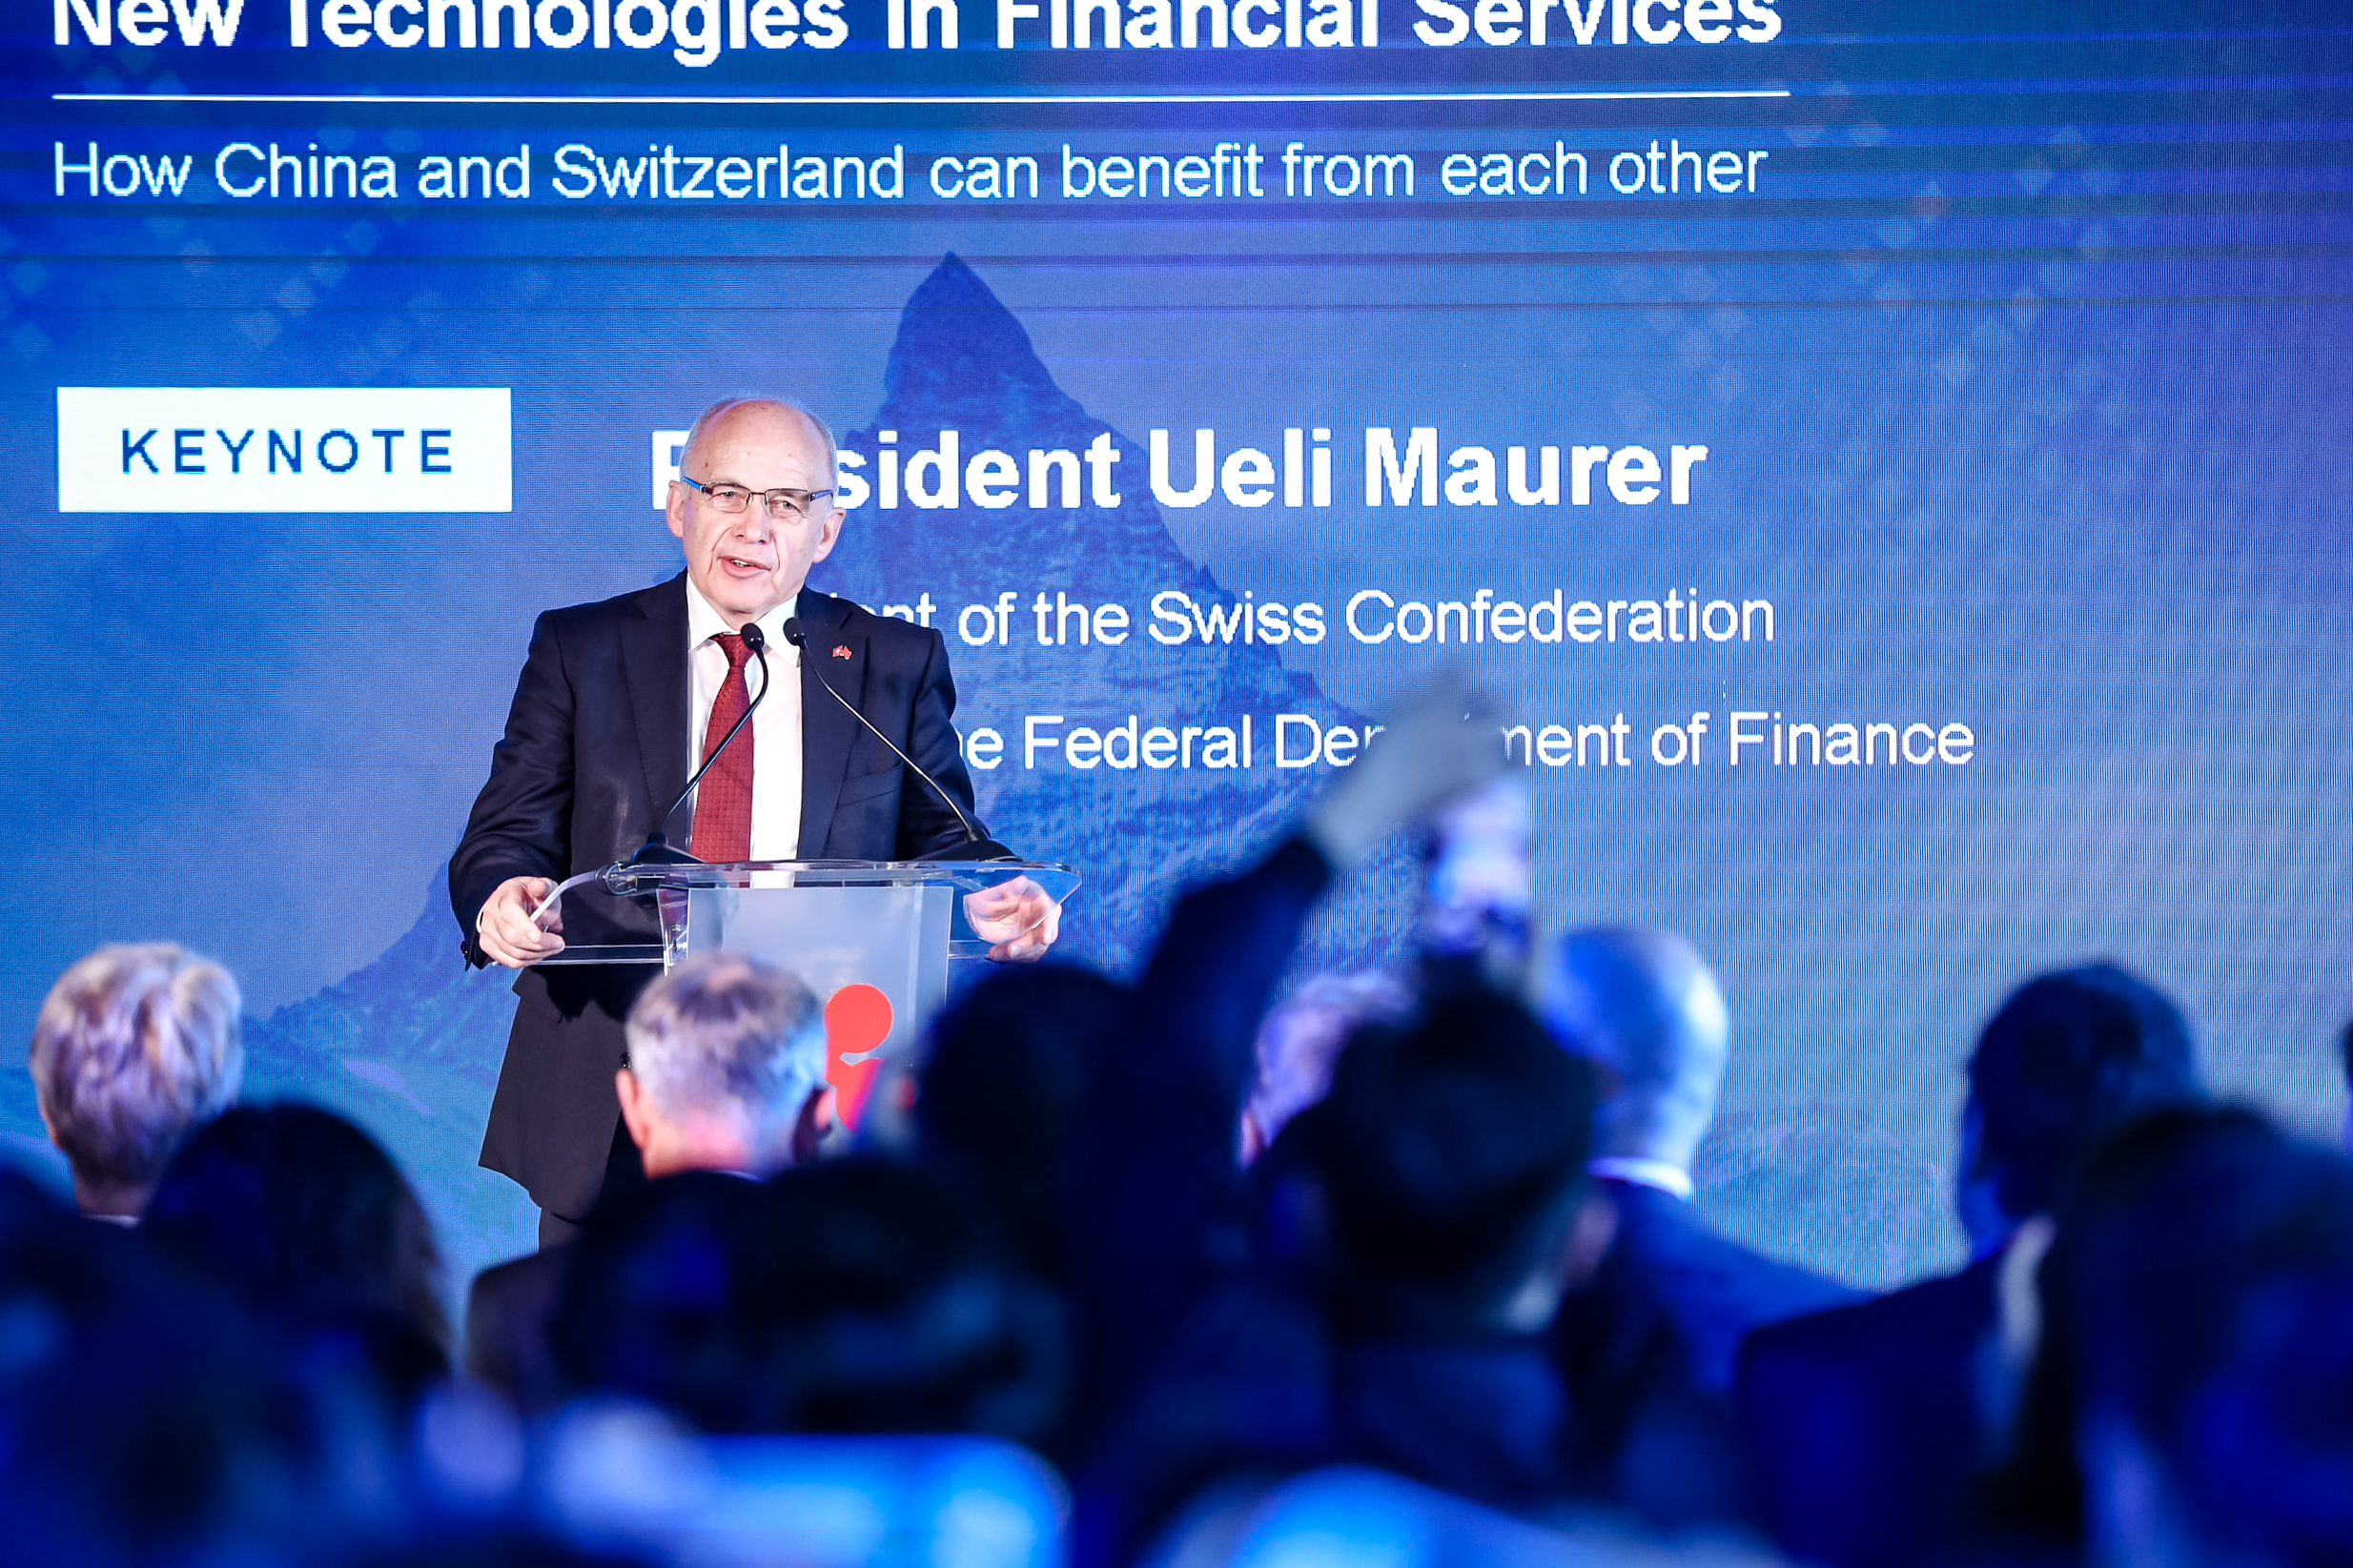 Mr Ueli Maurer, President of the Swiss Confederation delivers an opening keynote speech, calling for the Sino-Swiss collaboration and mutual benefit in fintech.